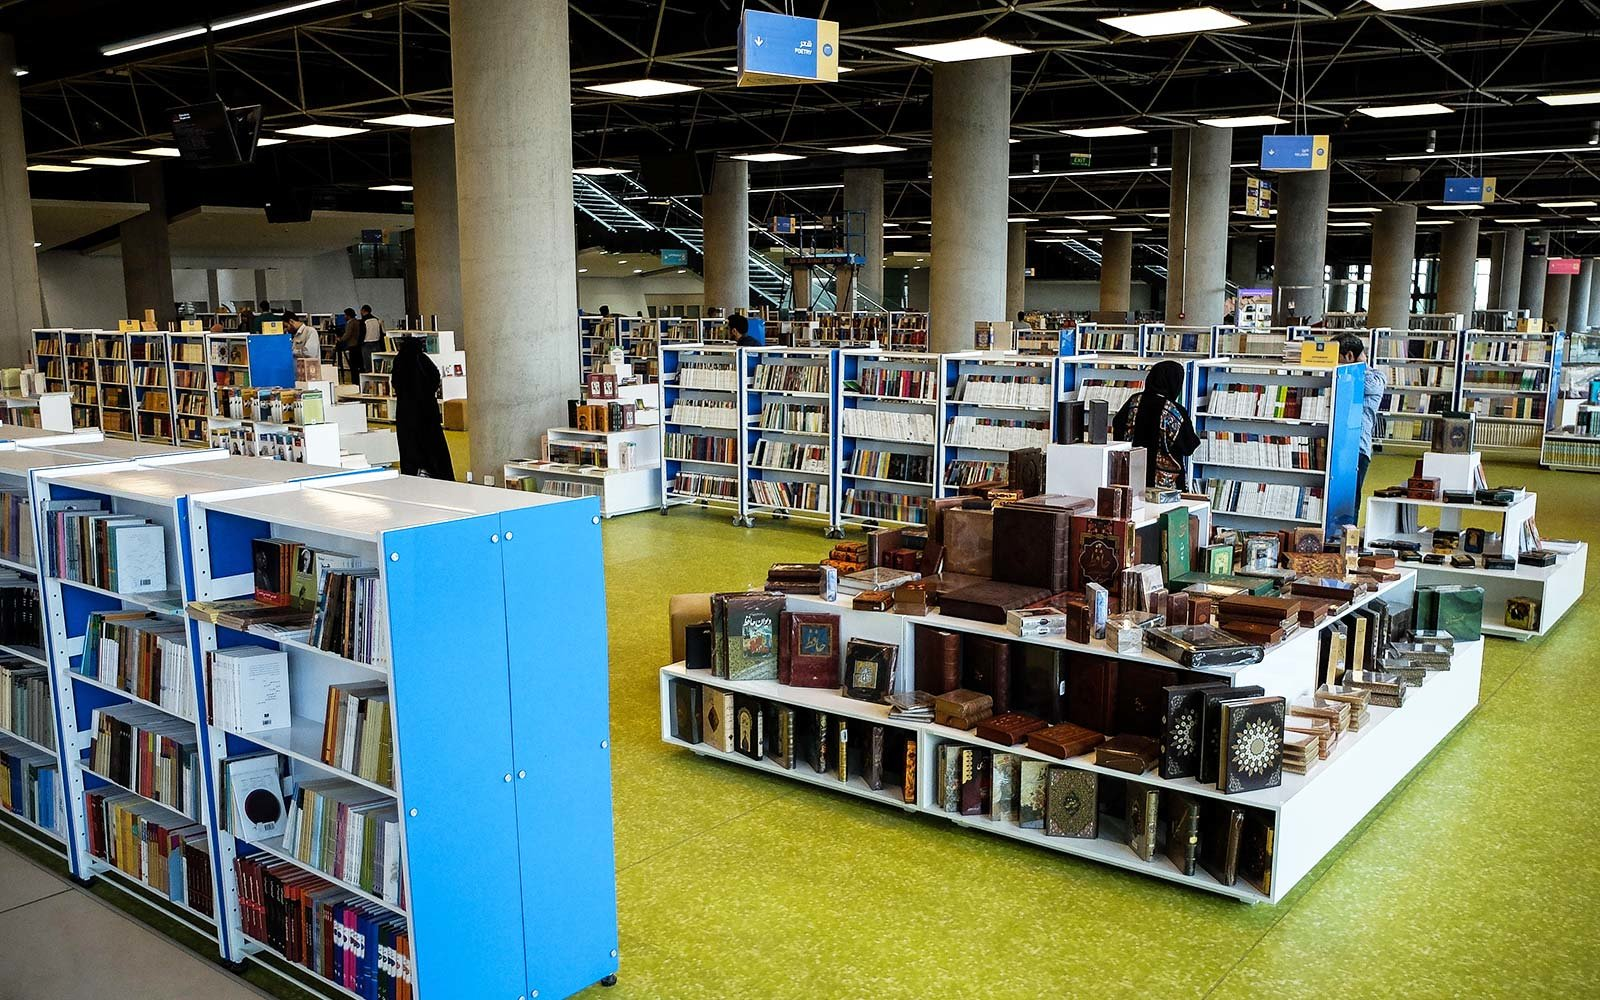 interior-tehran-book-garden-largest-bookstore-iran-iranbooks0817.jpg